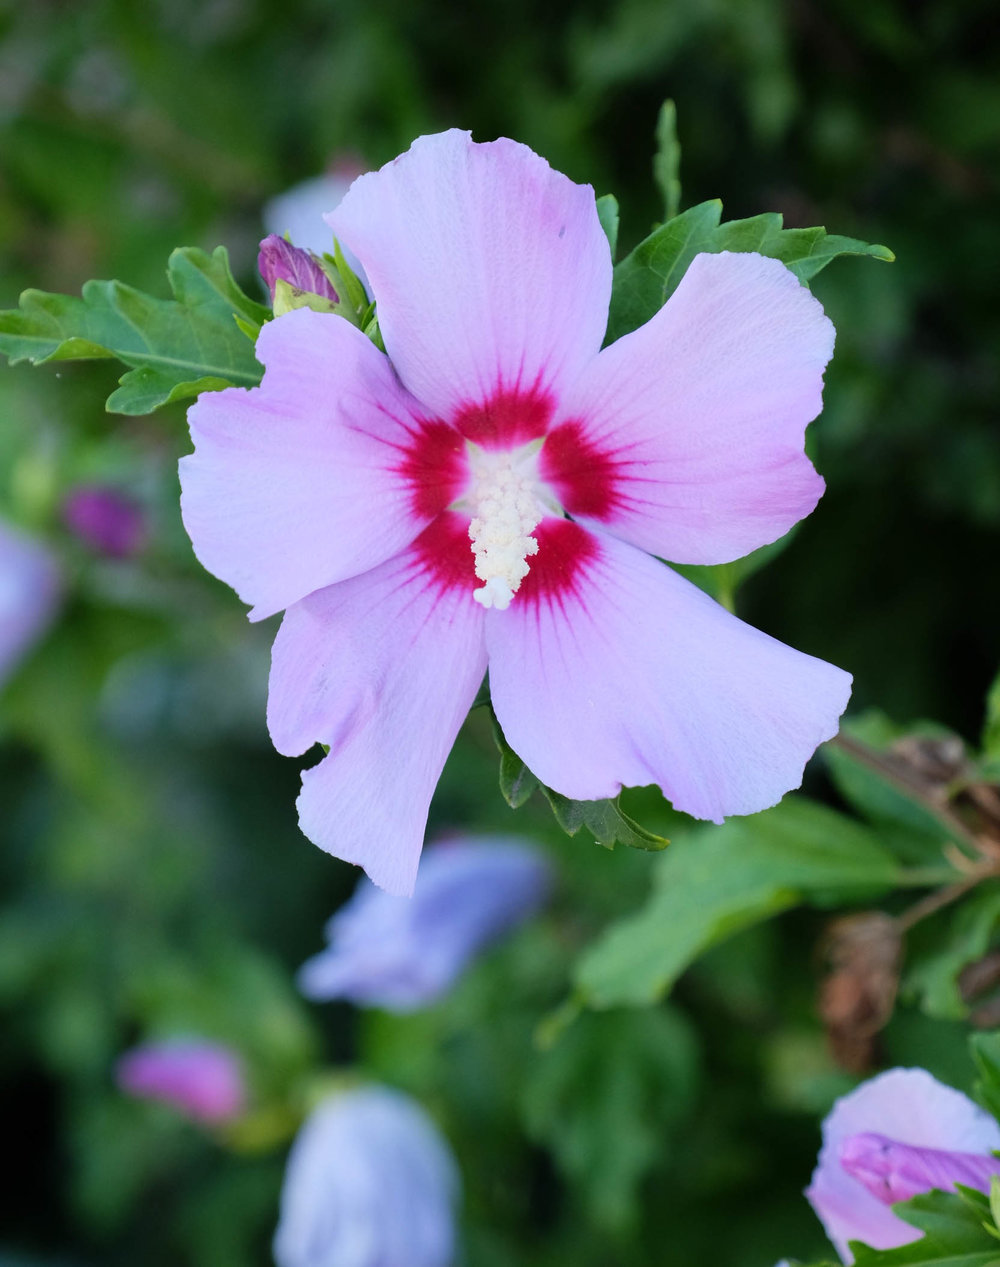 nantucket-hibiscus-laurenschwaiger-travel-blog.jpg